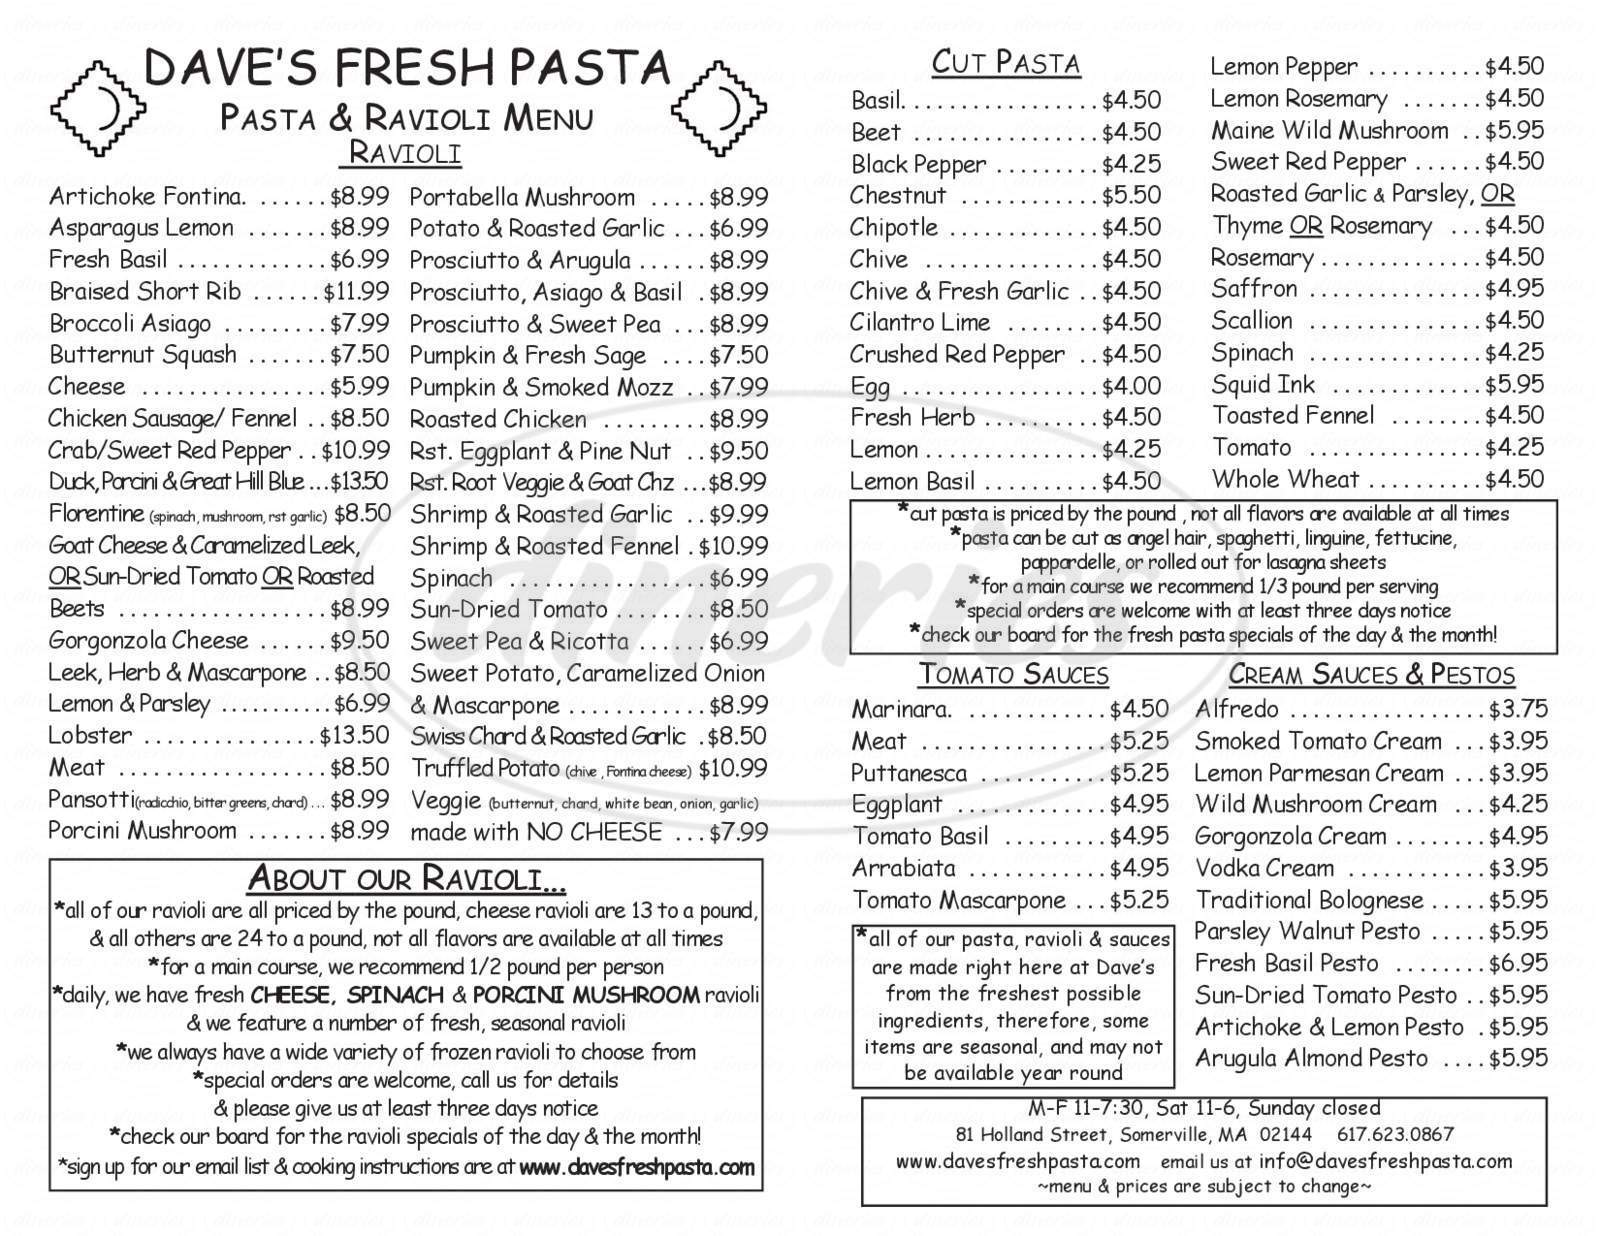 menu for Dave's Fresh Pasta